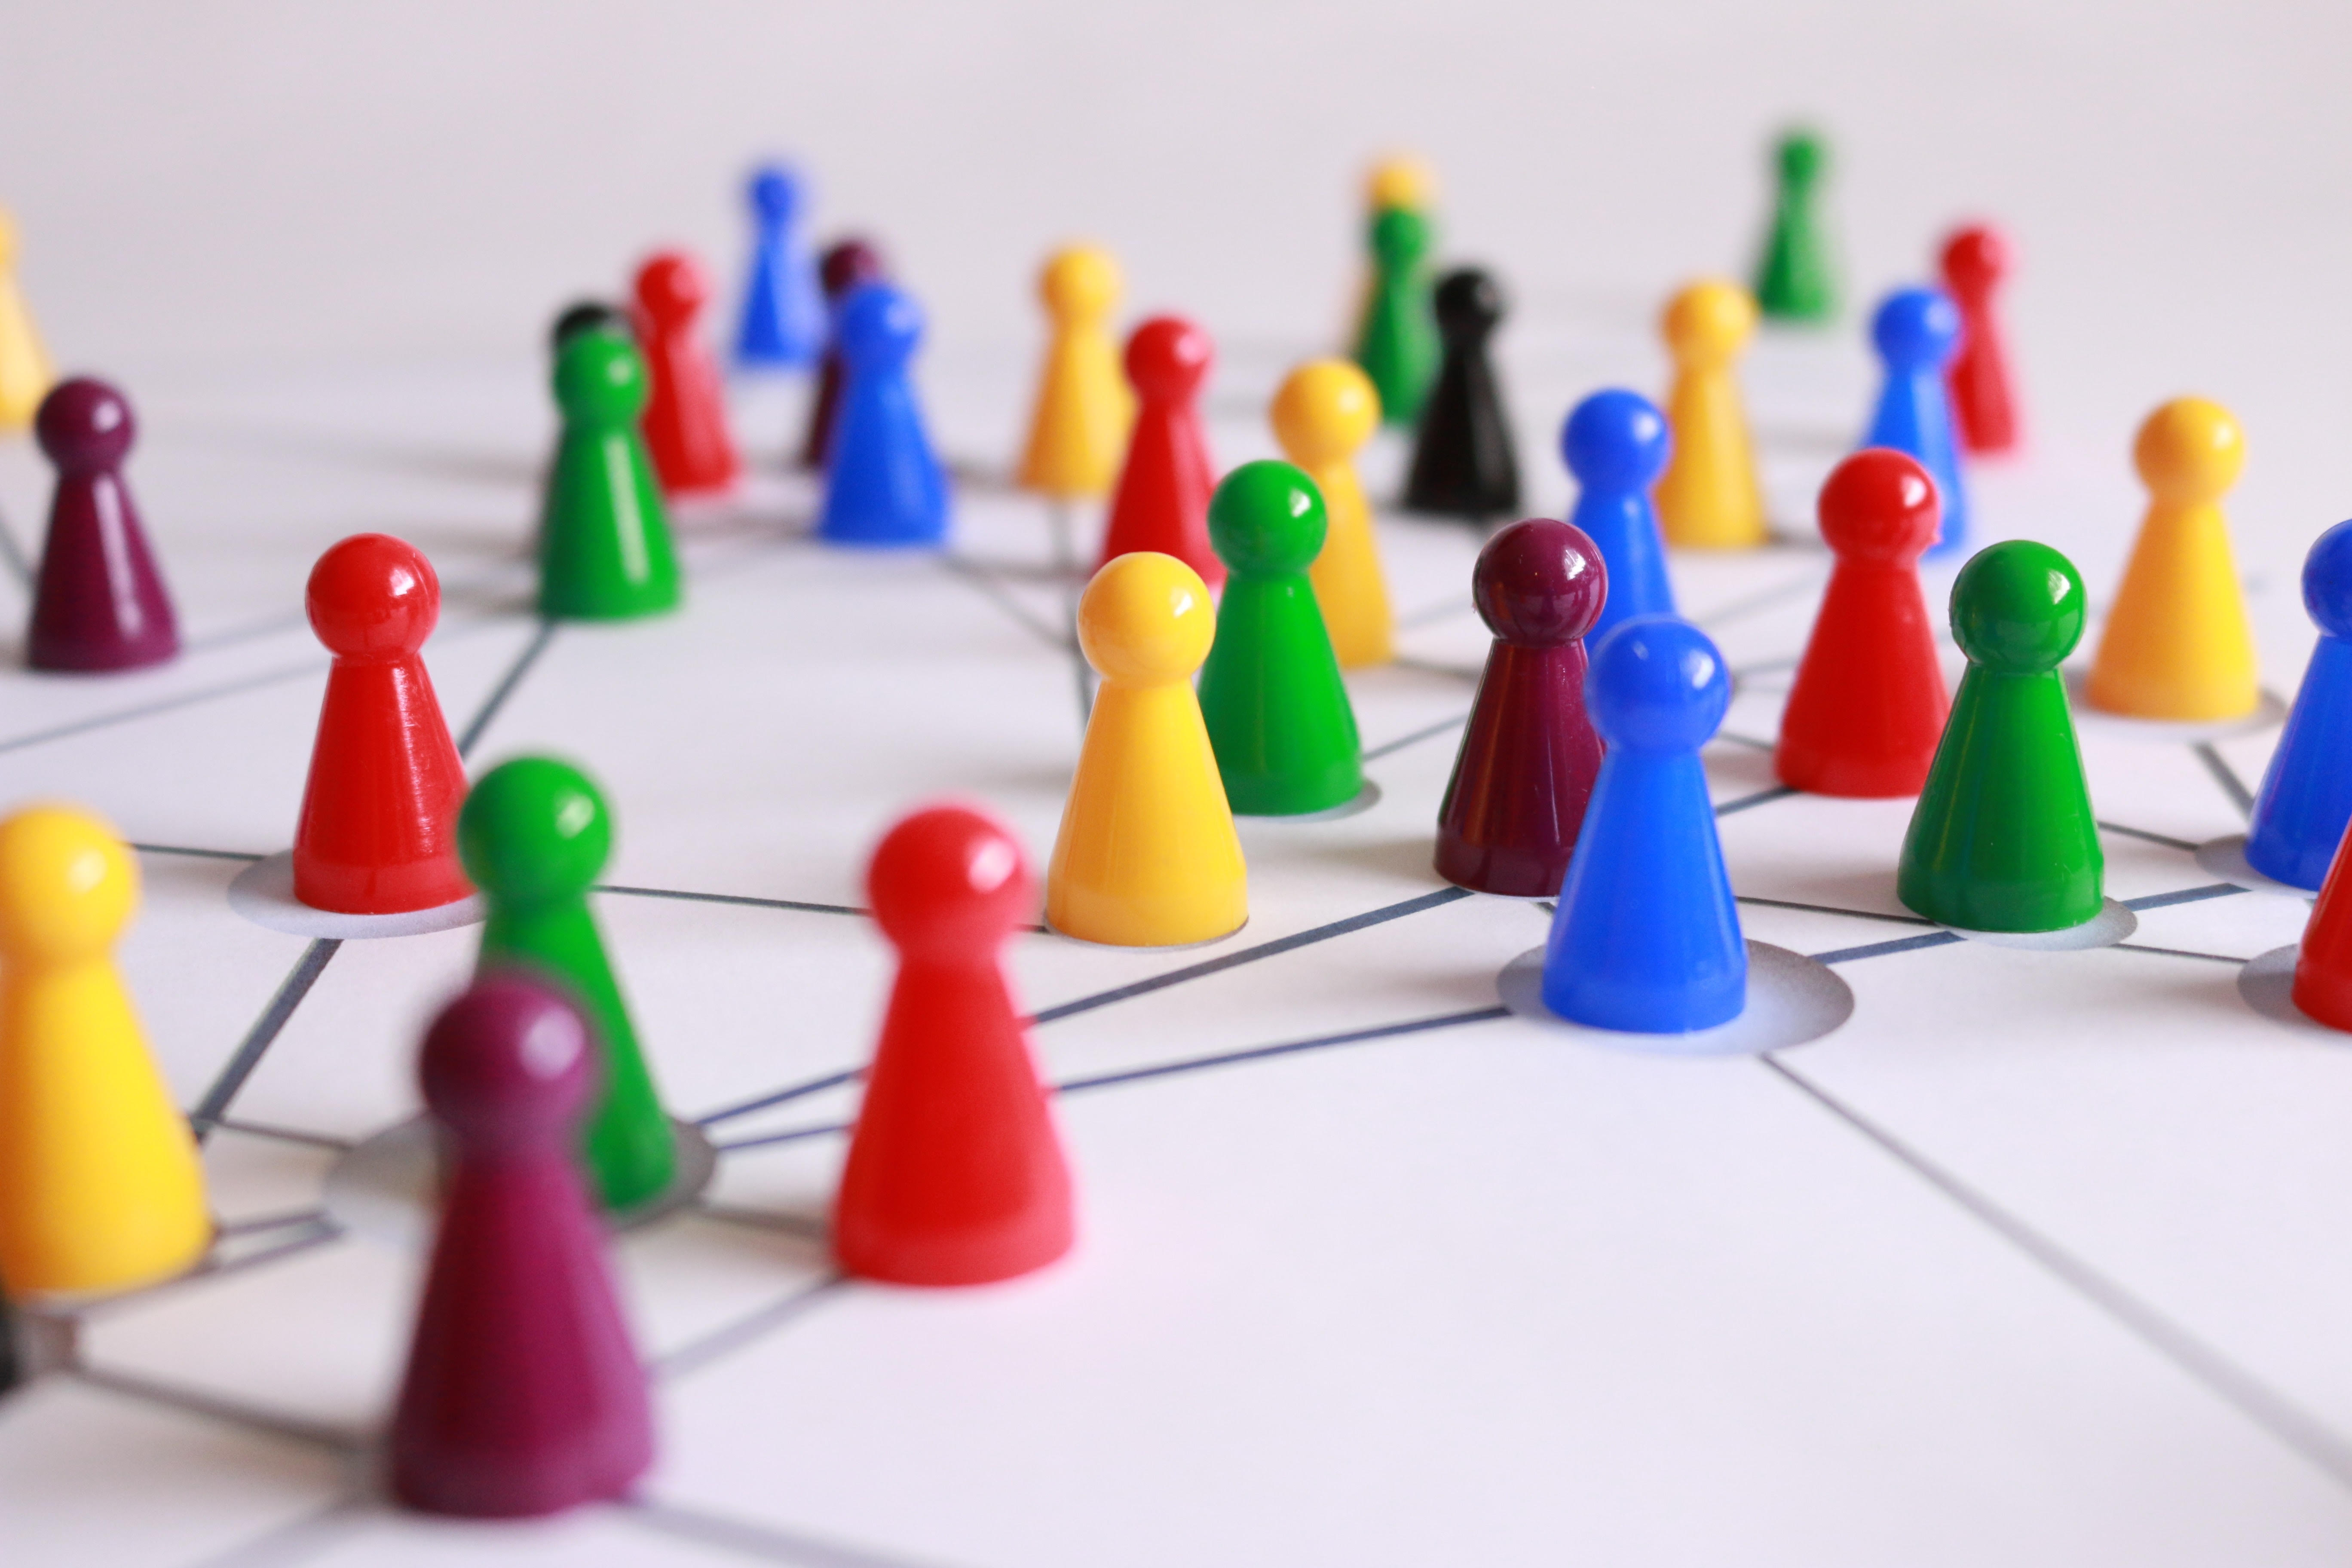 Choosing marketing tactics is like moving pawns